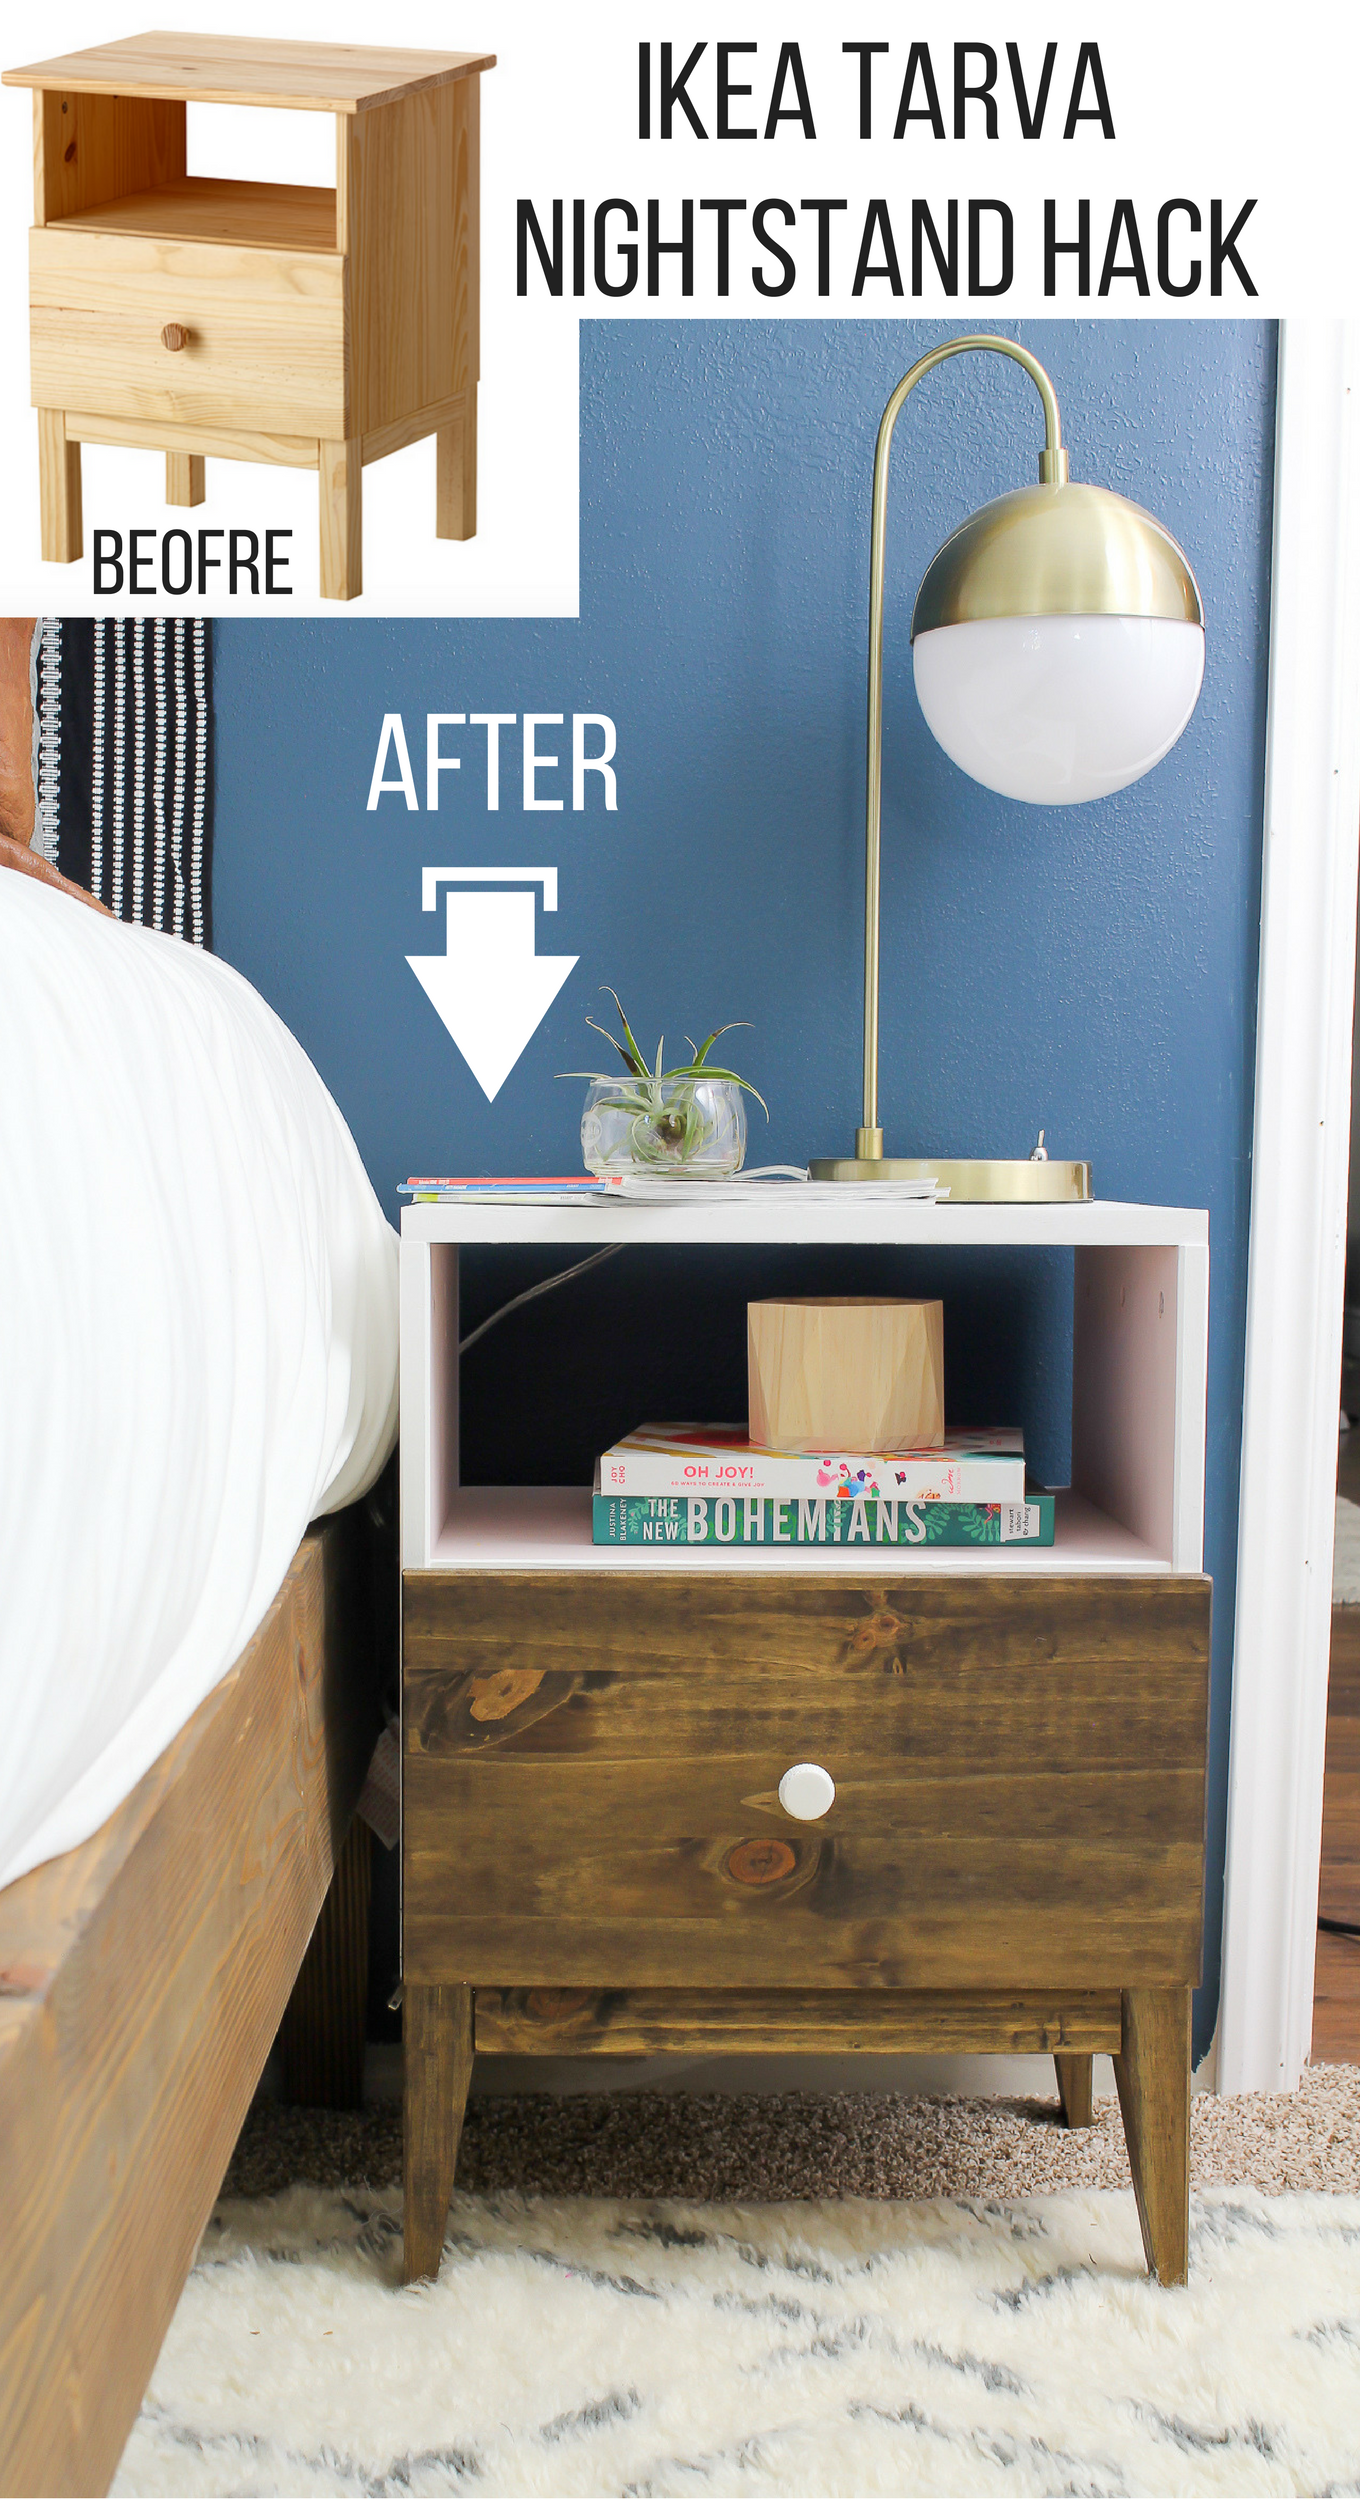 ikea tarva nightstand makeover. Black Bedroom Furniture Sets. Home Design Ideas